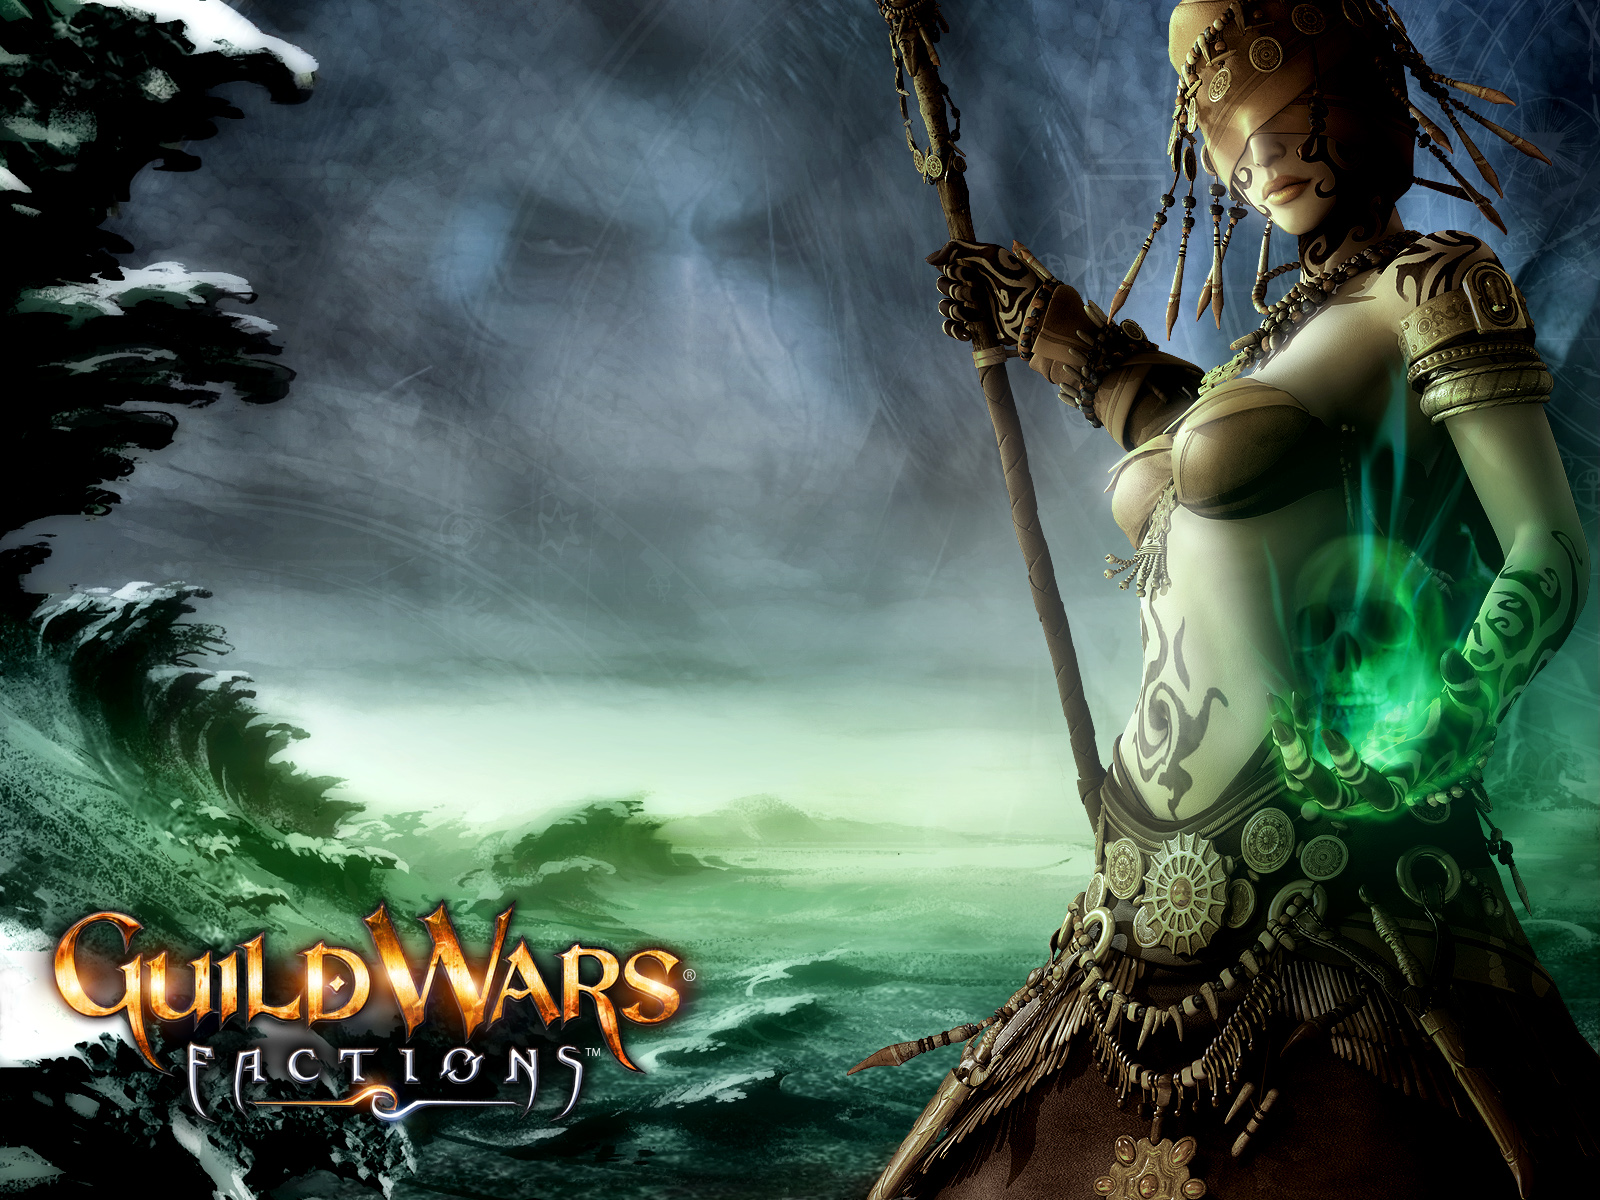 guild wars factions wallpapers - photo #2